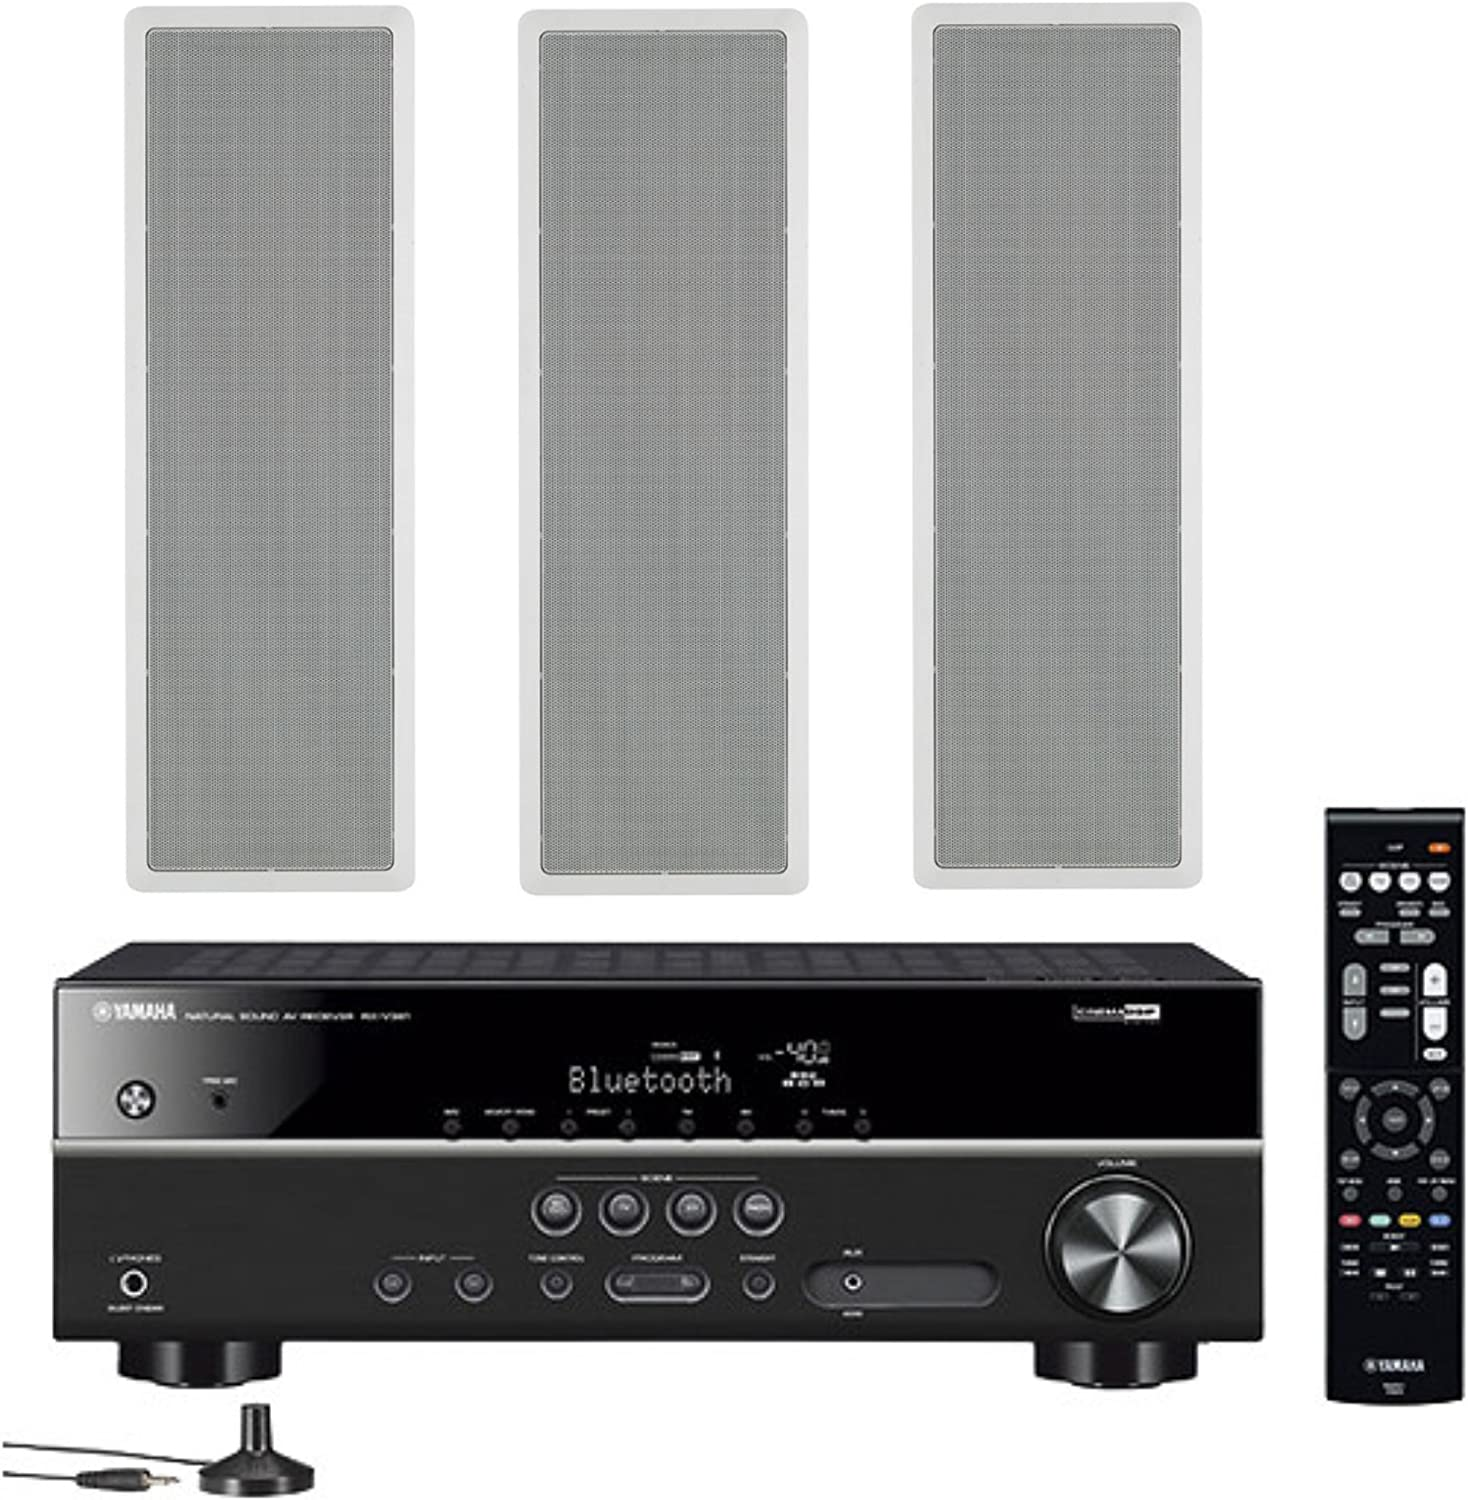 Yamaha 5.1-Channel Wireless Bluetooth 4K A/V Home Theater Receiver + Yamaha High-Performance Natural Sound 2-Way in-Wall Left/Center/Right Channel Speaker System (Set of 3)